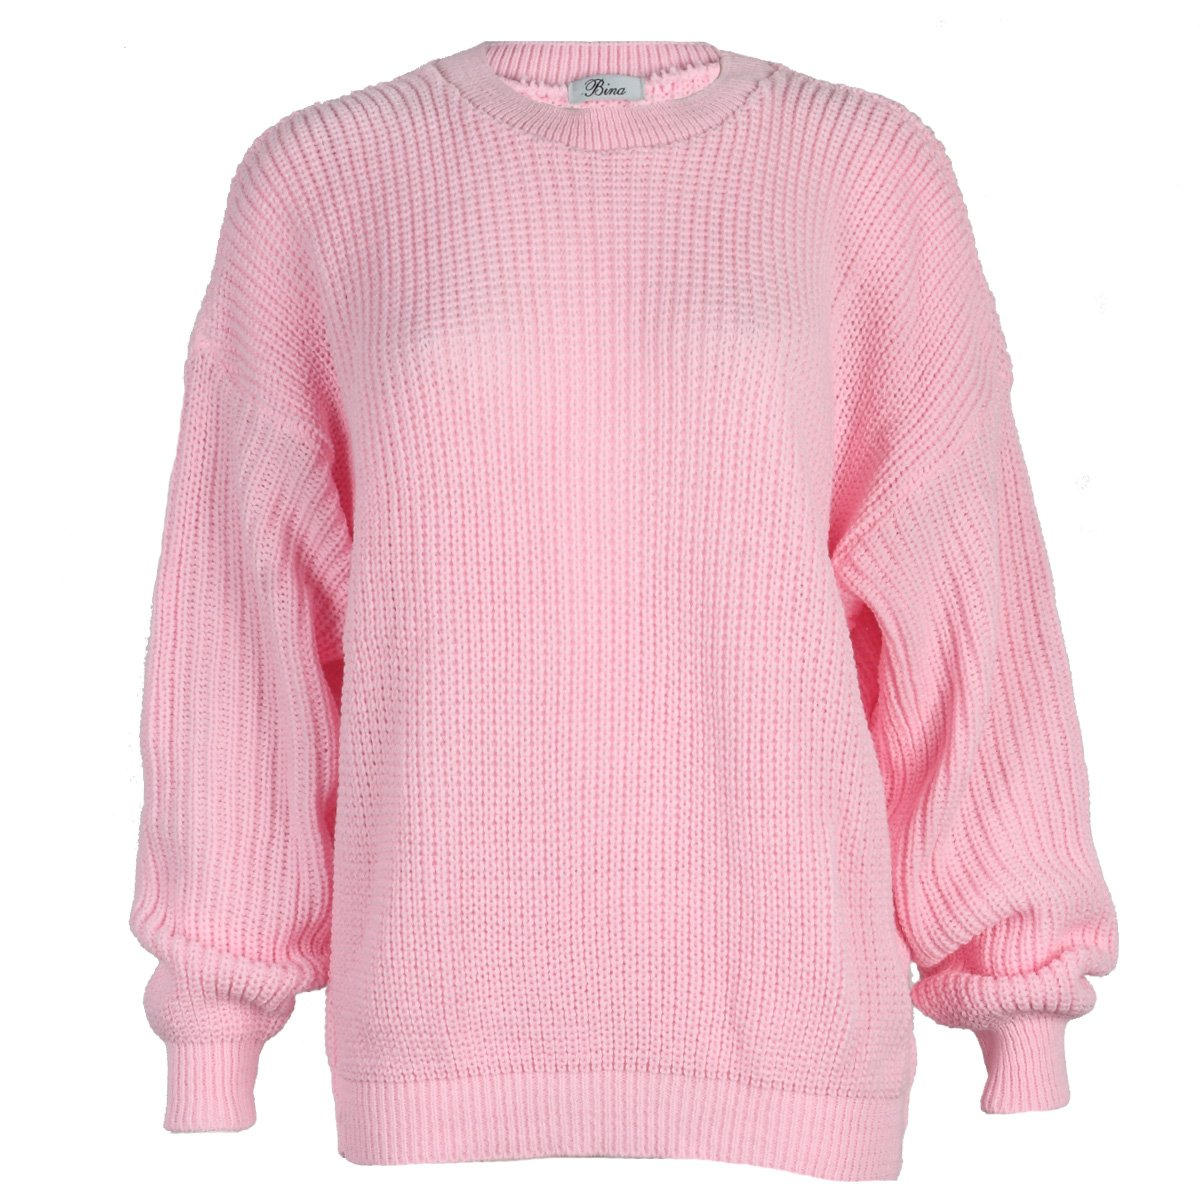 My1stwish Womens Oversized Ladies Knitted Baggy Chunky Jumper Sweater Top  at Amazon Women s Clothing store  552f9ef07